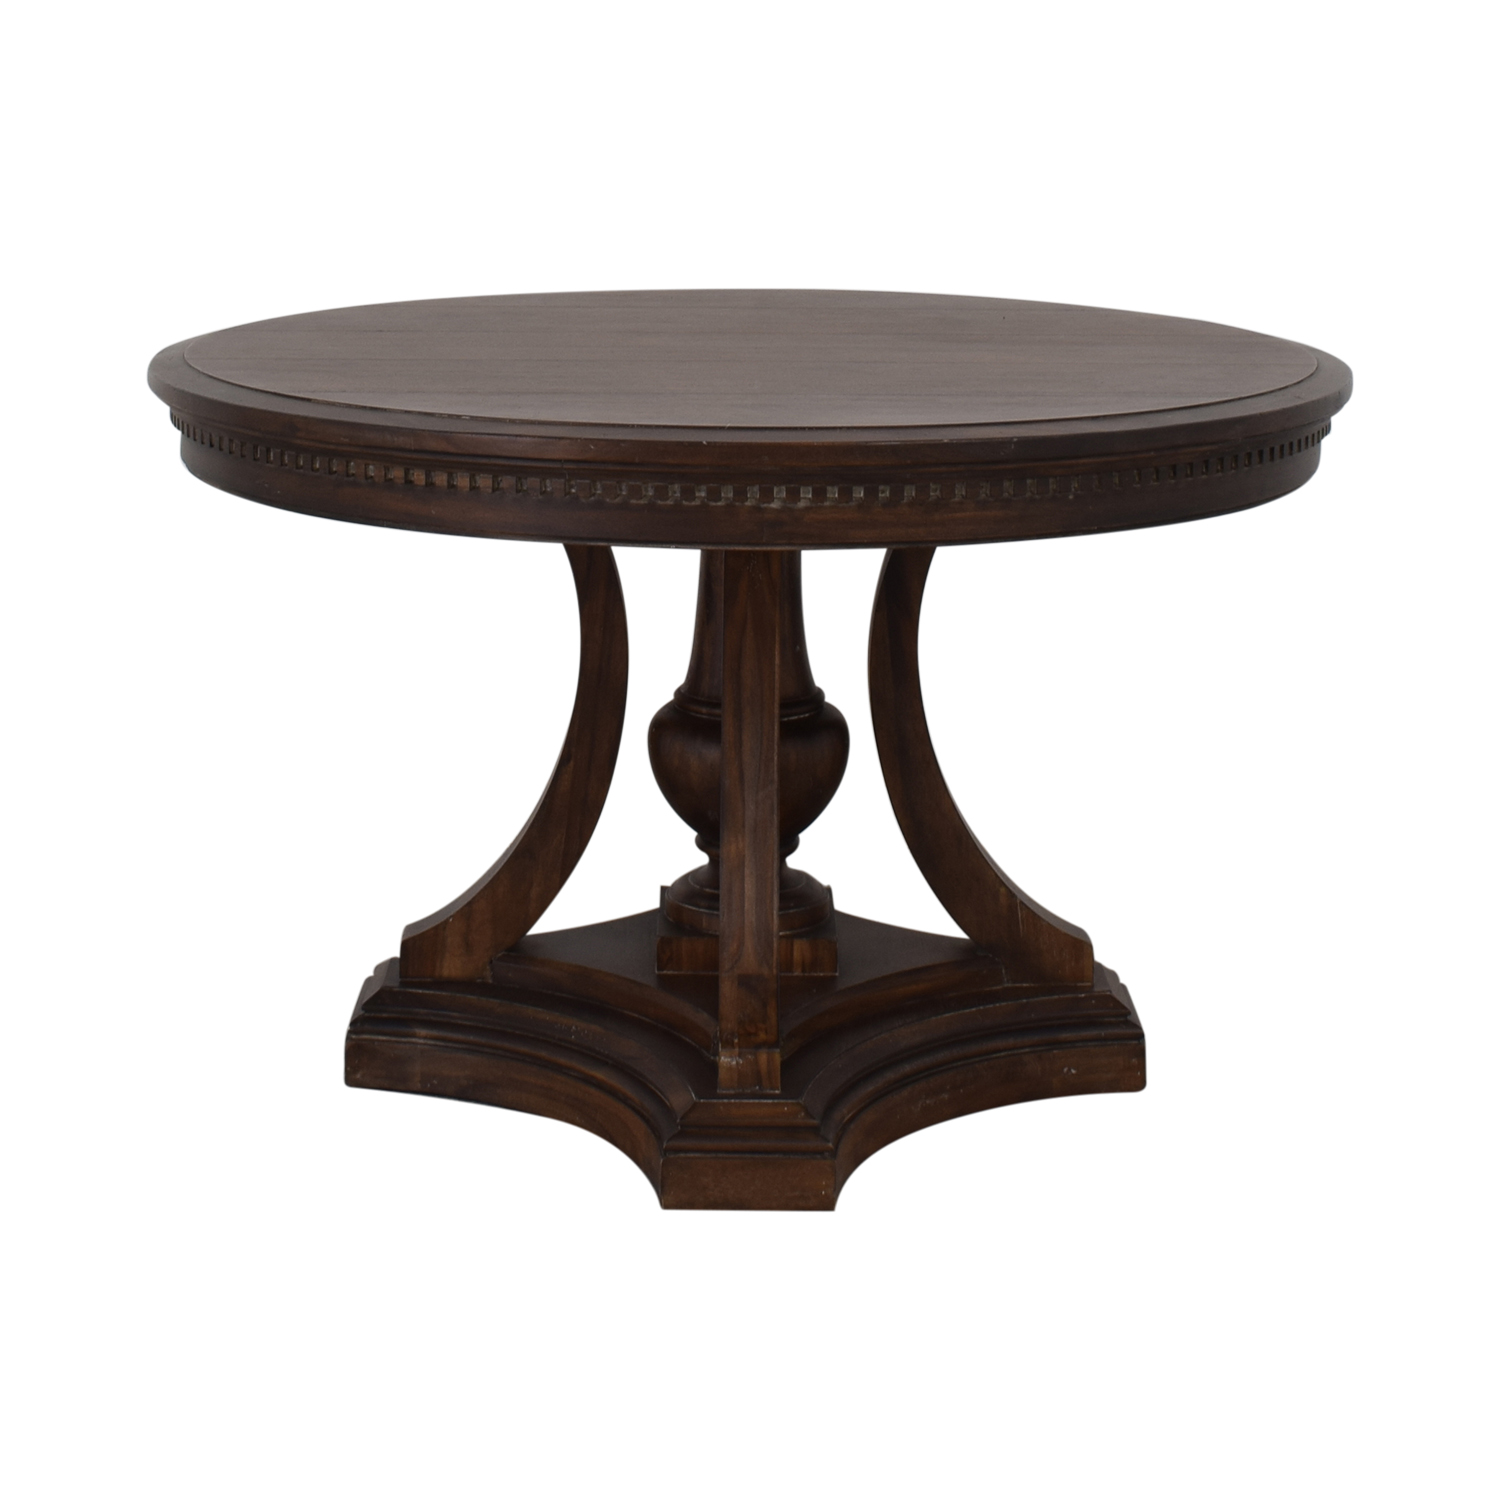 Restoration Hardware St James Round Dining Table Nyc